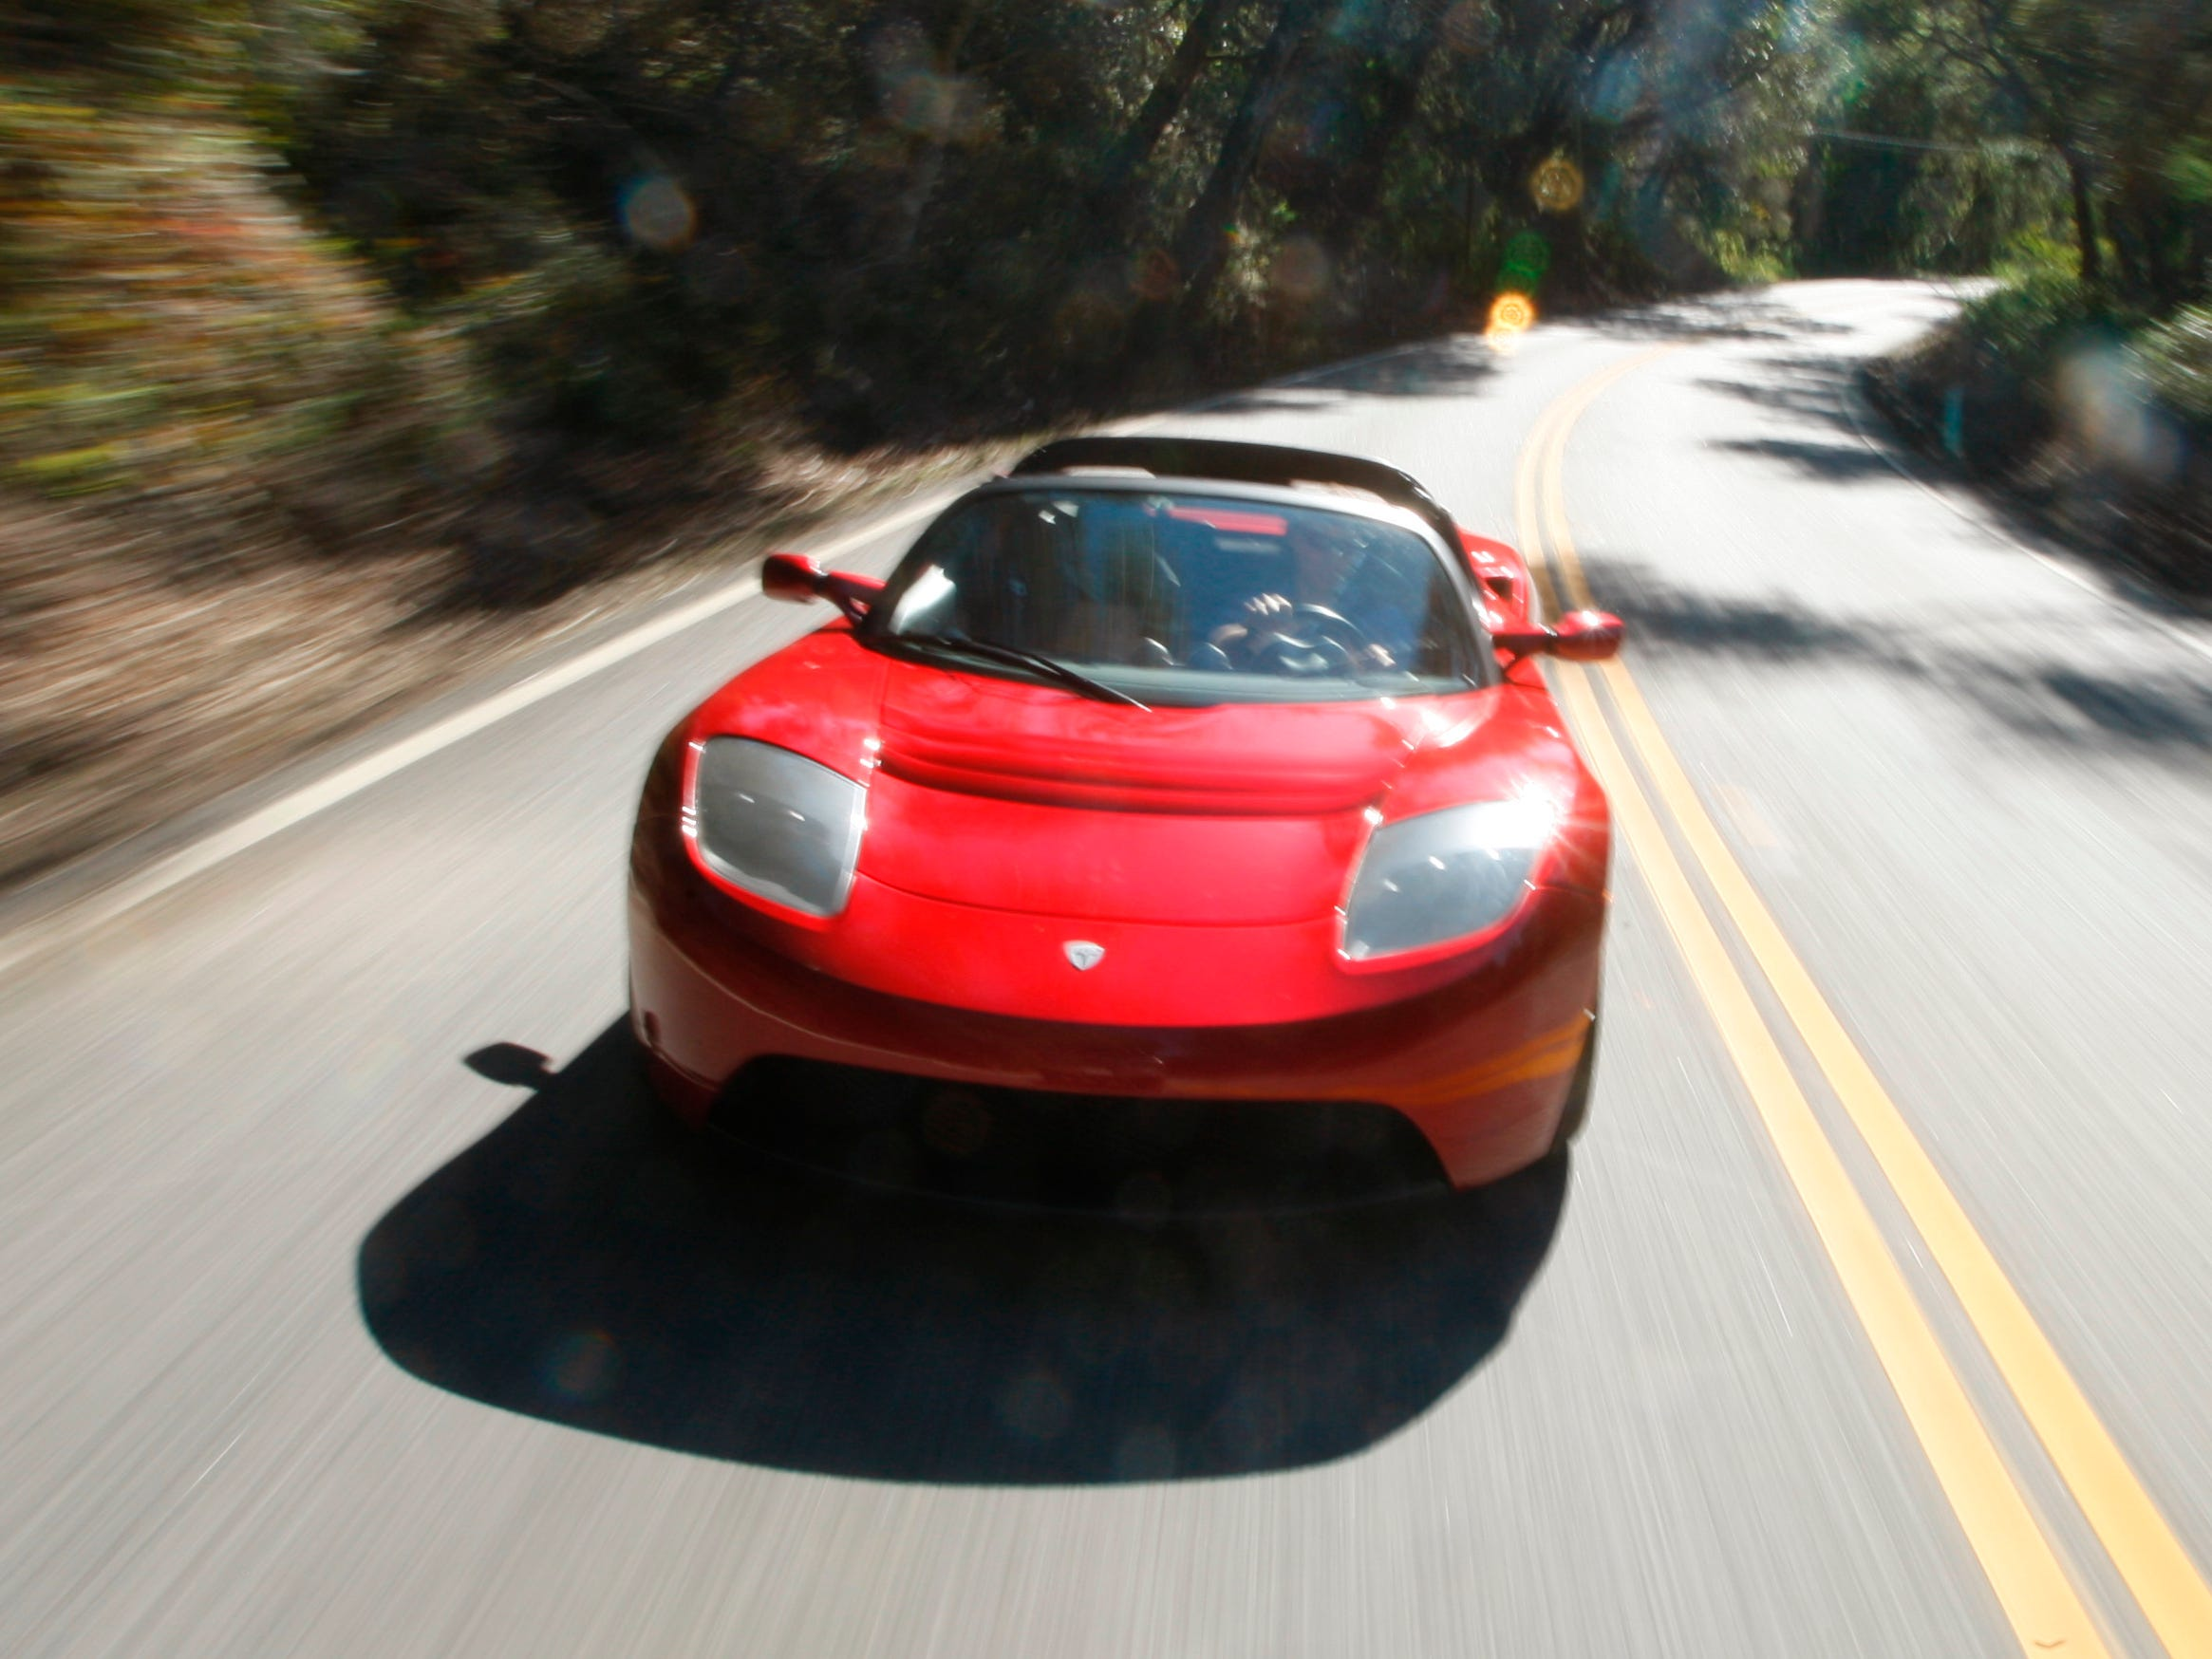 This Tesla Roadster on the road in San Carlos, Calif. Feb. 28, 2008